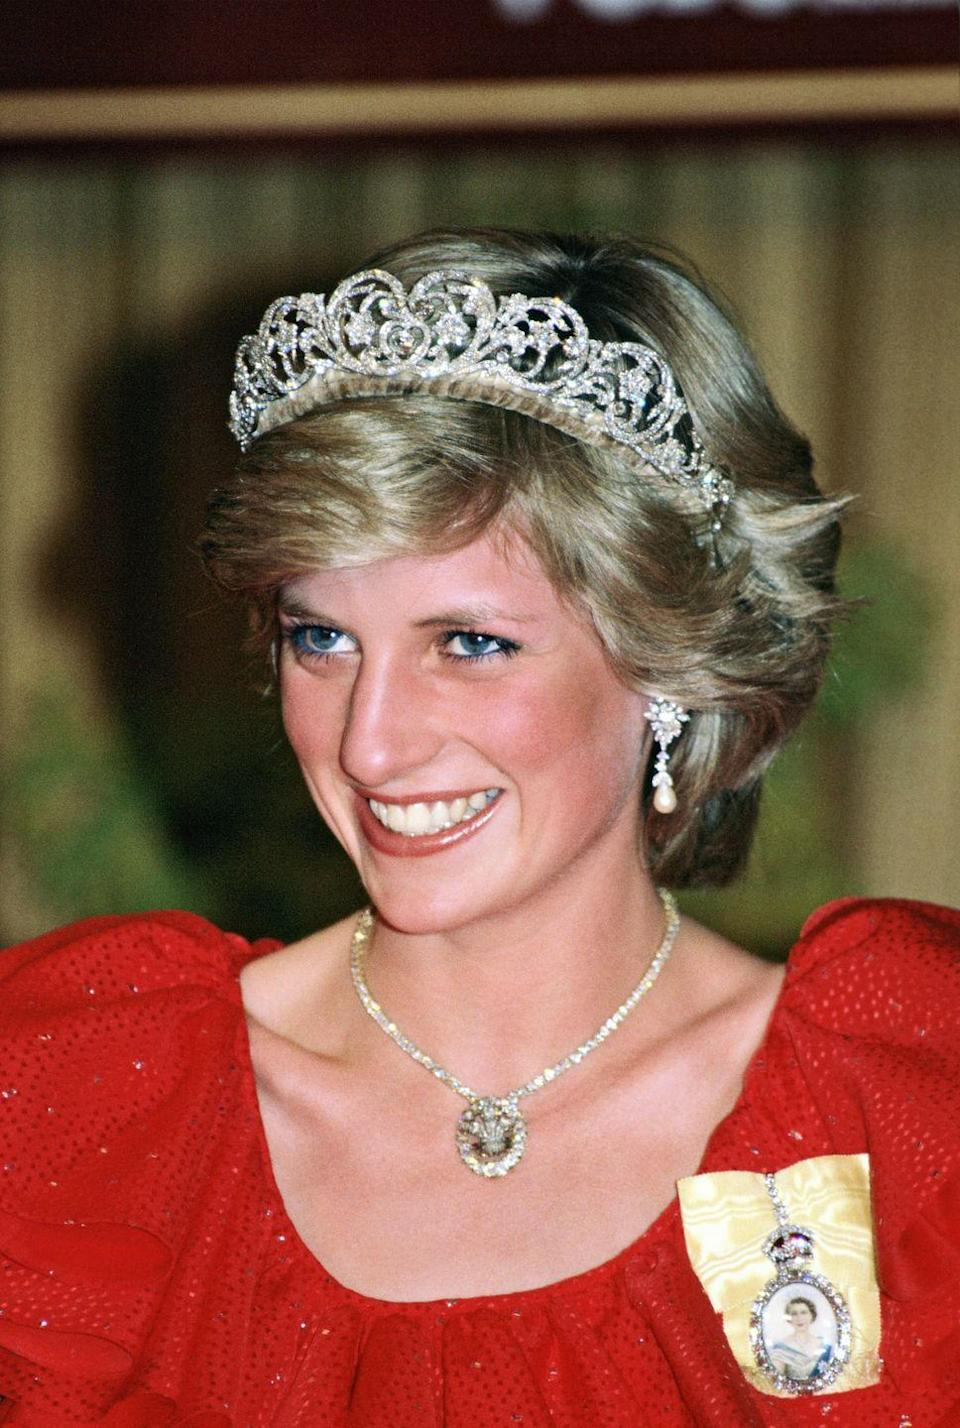 <p>Princess Diana continued to wear the Spencer tiara throughout her life. Here, during an official tour of Australia, she paired it with her Royal Order (in yellow, pinned to her dress). Around Diana's neck is the Prince of Wales Feathers Pendant, a gift to Diana from the Queen Mother to mark her engagement to Prince Charles. The pendant contains 18 brilliant-cut diamonds and tiny emeralds surround the Prince of Wales crest. <br></p>